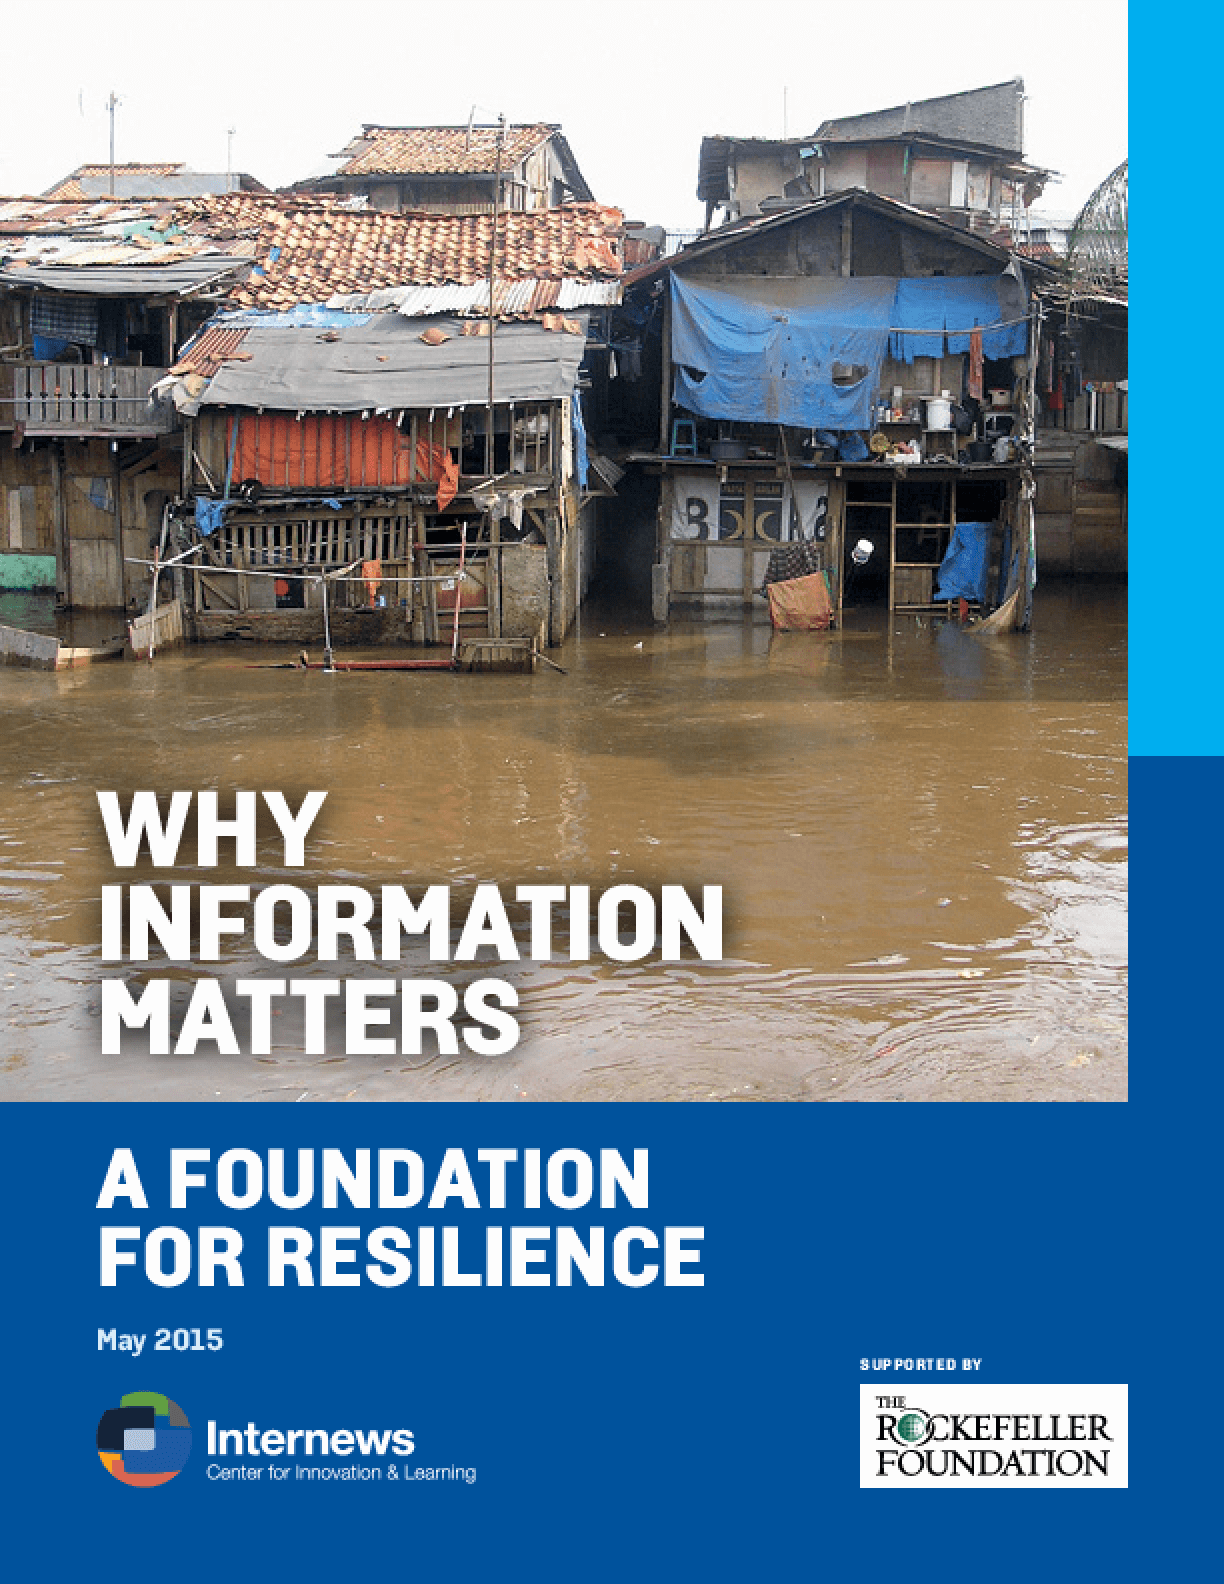 Why Information Matters: A Foundation for Resilience